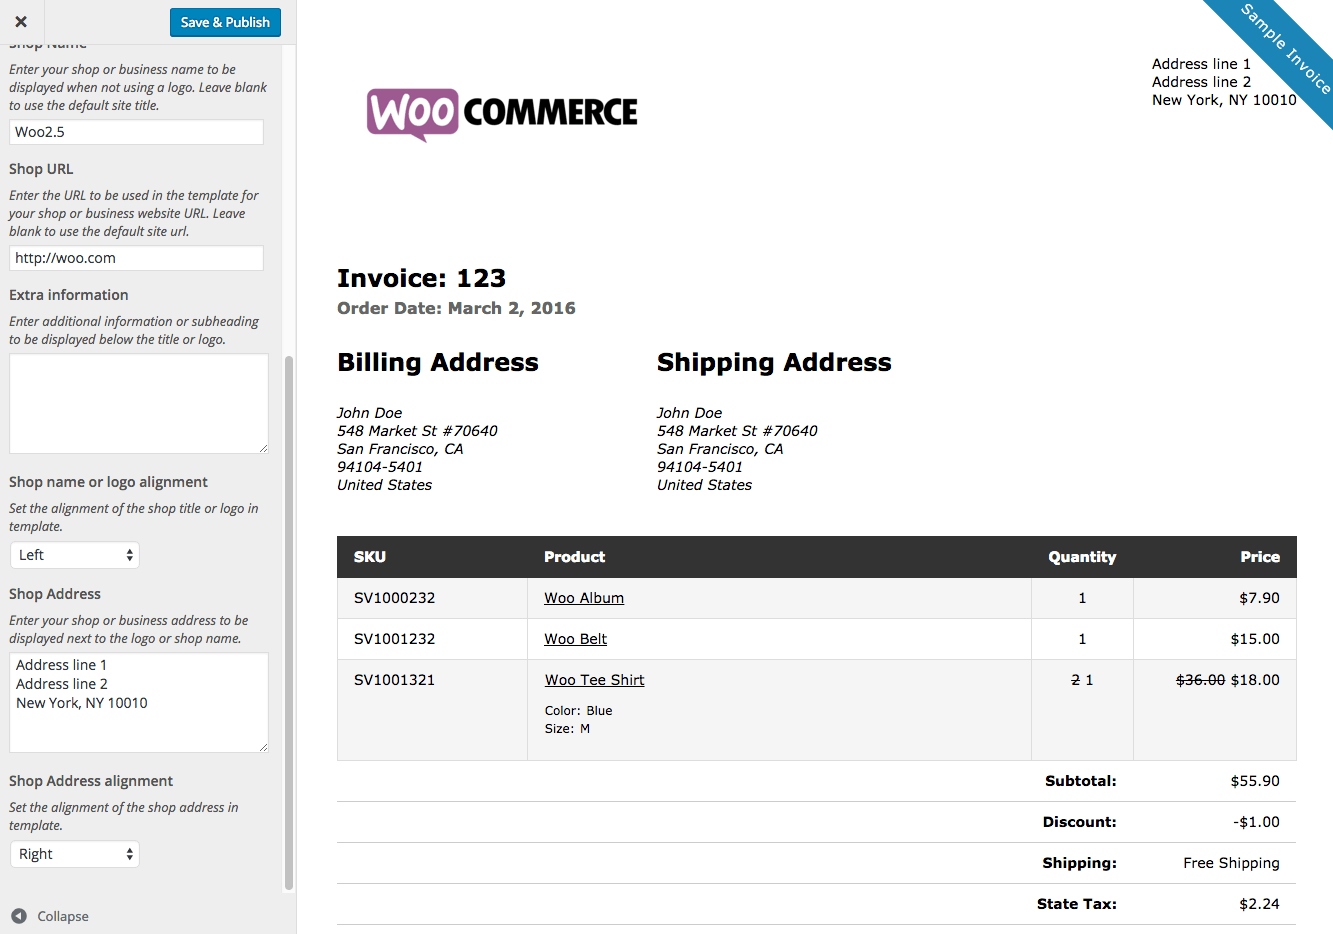 Howcanigettallerus  Unusual Woocommerce Print Invoices Amp Packing Lists  Woocommerce Docs With Marvelous Woocommerce Print Invoices  Packing Lists Customizer With Beautiful Order Invoice Template Also Work Invoice Template Free In Addition Access Invoice Database And Dummy Invoice Template As Well As Design Invoice Template Free Additionally Toyota Dealer Invoice From Docswoocommercecom With Howcanigettallerus  Marvelous Woocommerce Print Invoices Amp Packing Lists  Woocommerce Docs With Beautiful Woocommerce Print Invoices  Packing Lists Customizer And Unusual Order Invoice Template Also Work Invoice Template Free In Addition Access Invoice Database From Docswoocommercecom